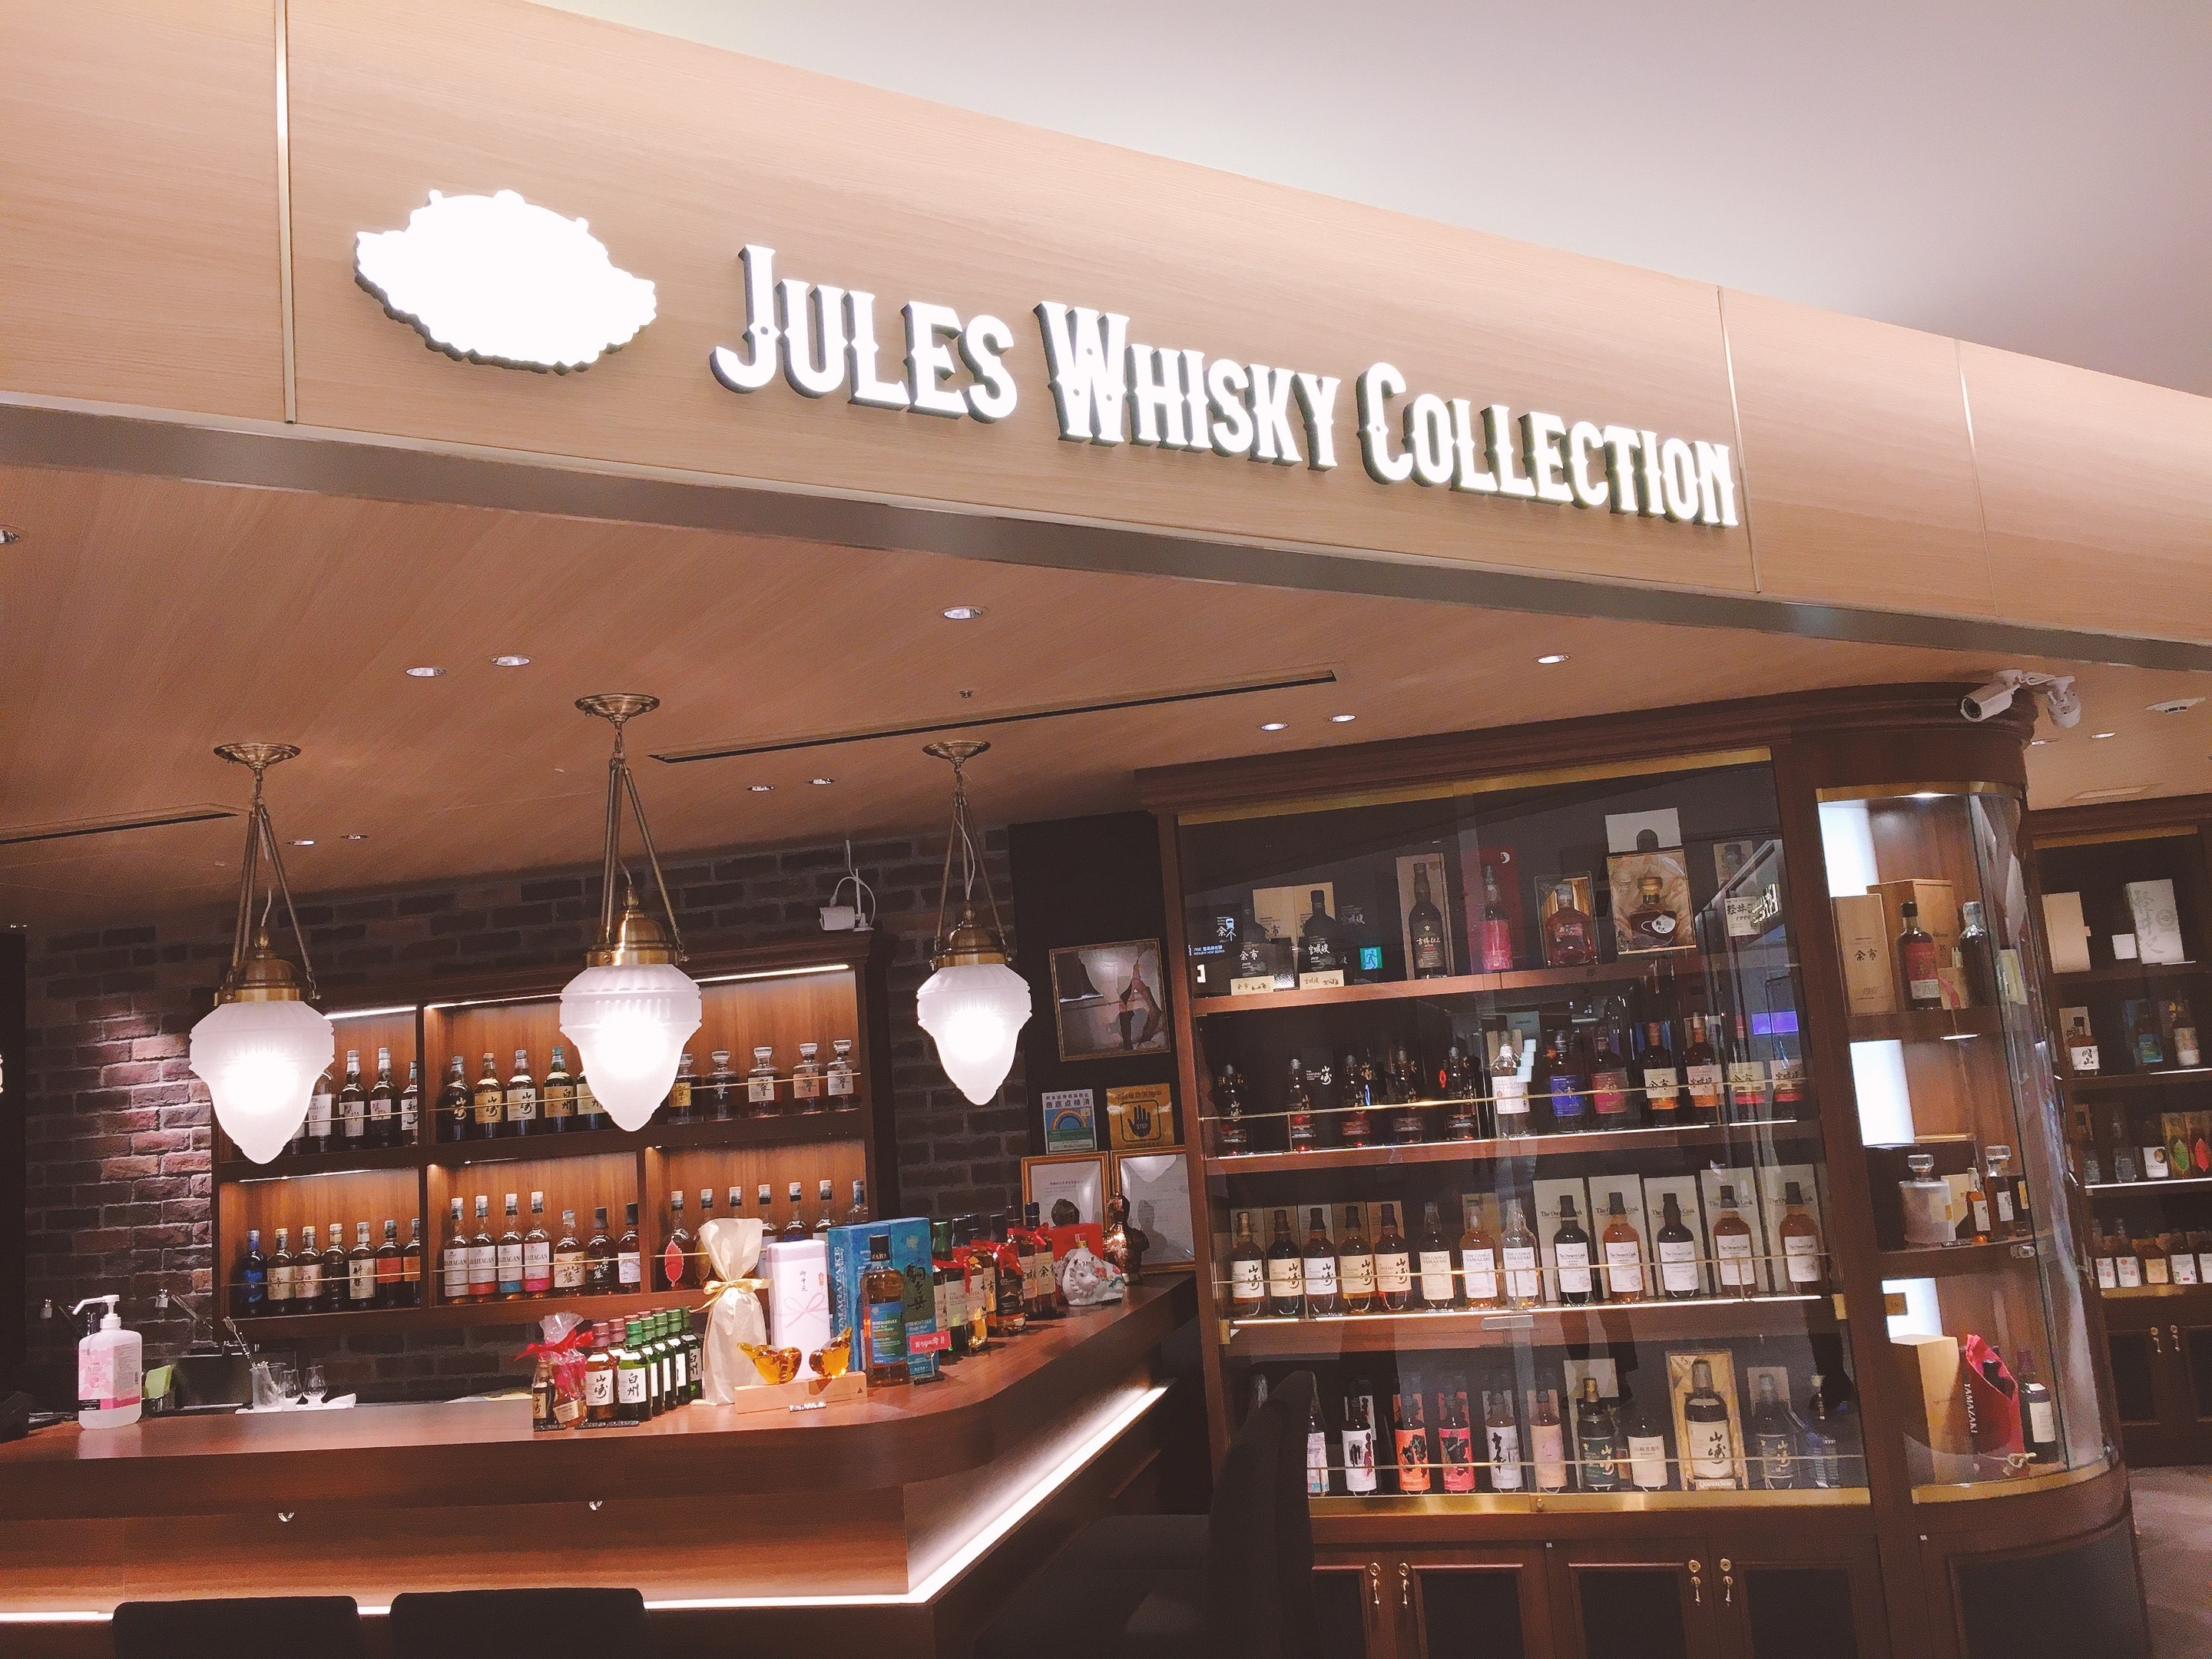 Jule's Whisky Collection